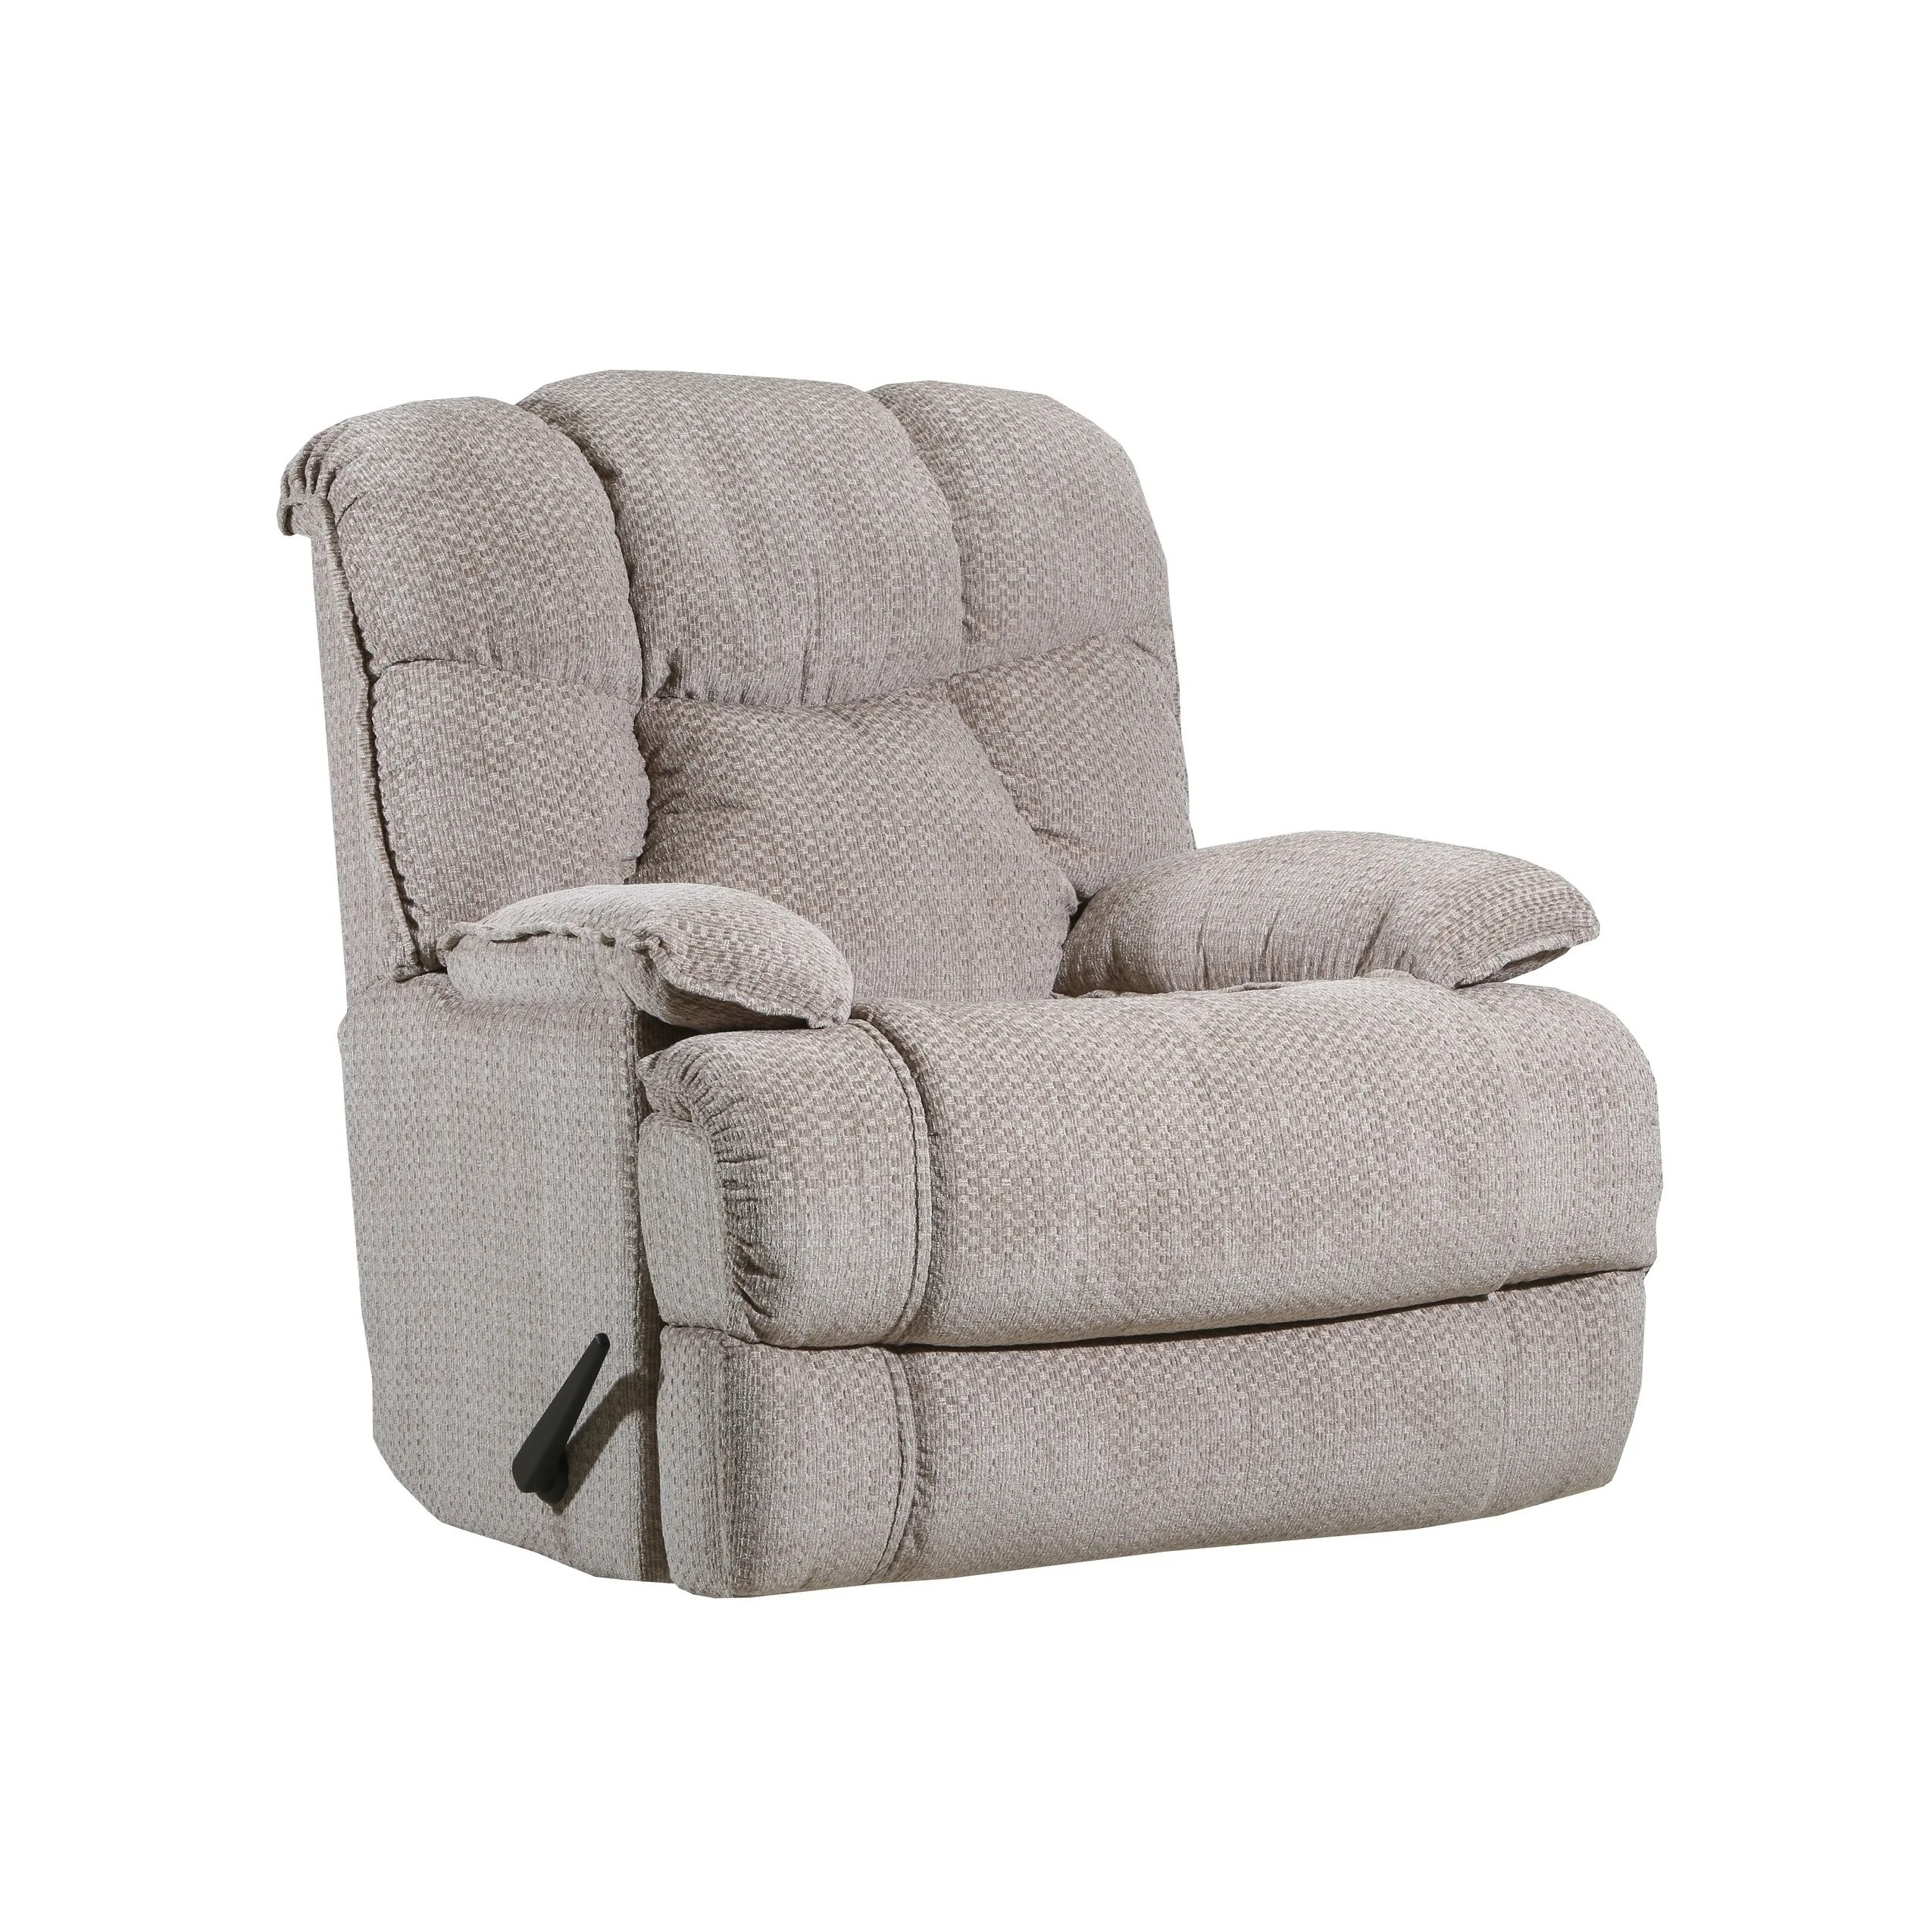 overstock zero gravity chair aluminum bar chairs buy recliner and rocking recliners online at